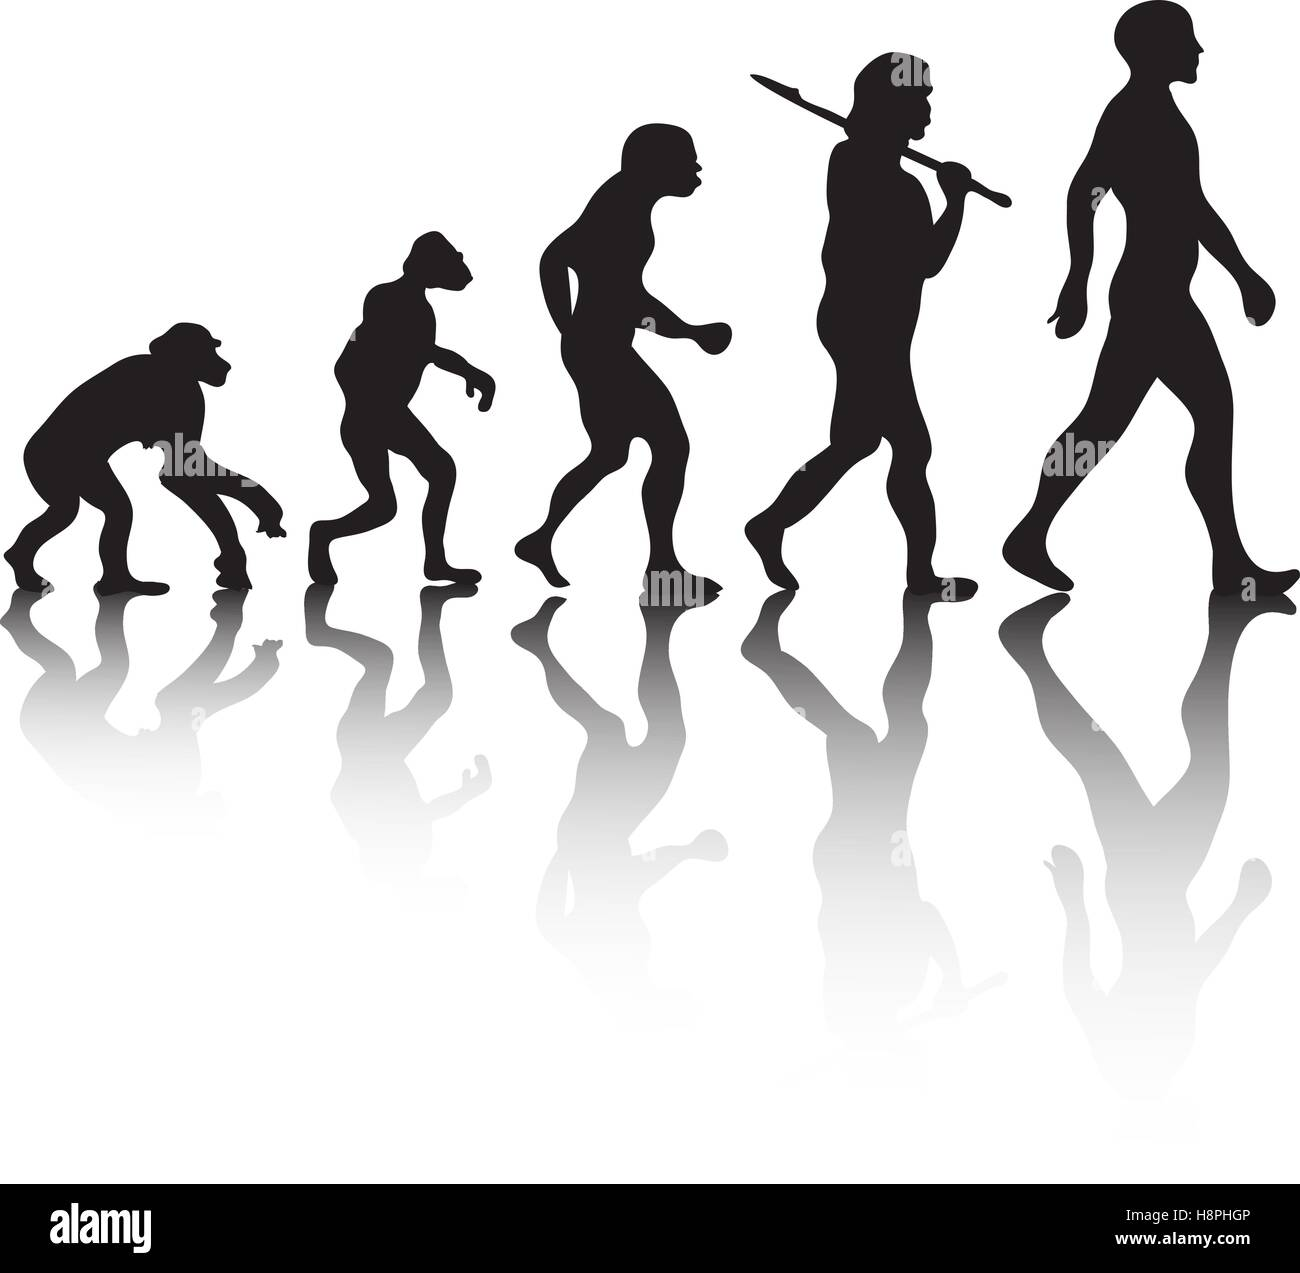 The evolution, silhouette people. Darwin s theory. Vector illustration - Stock Image